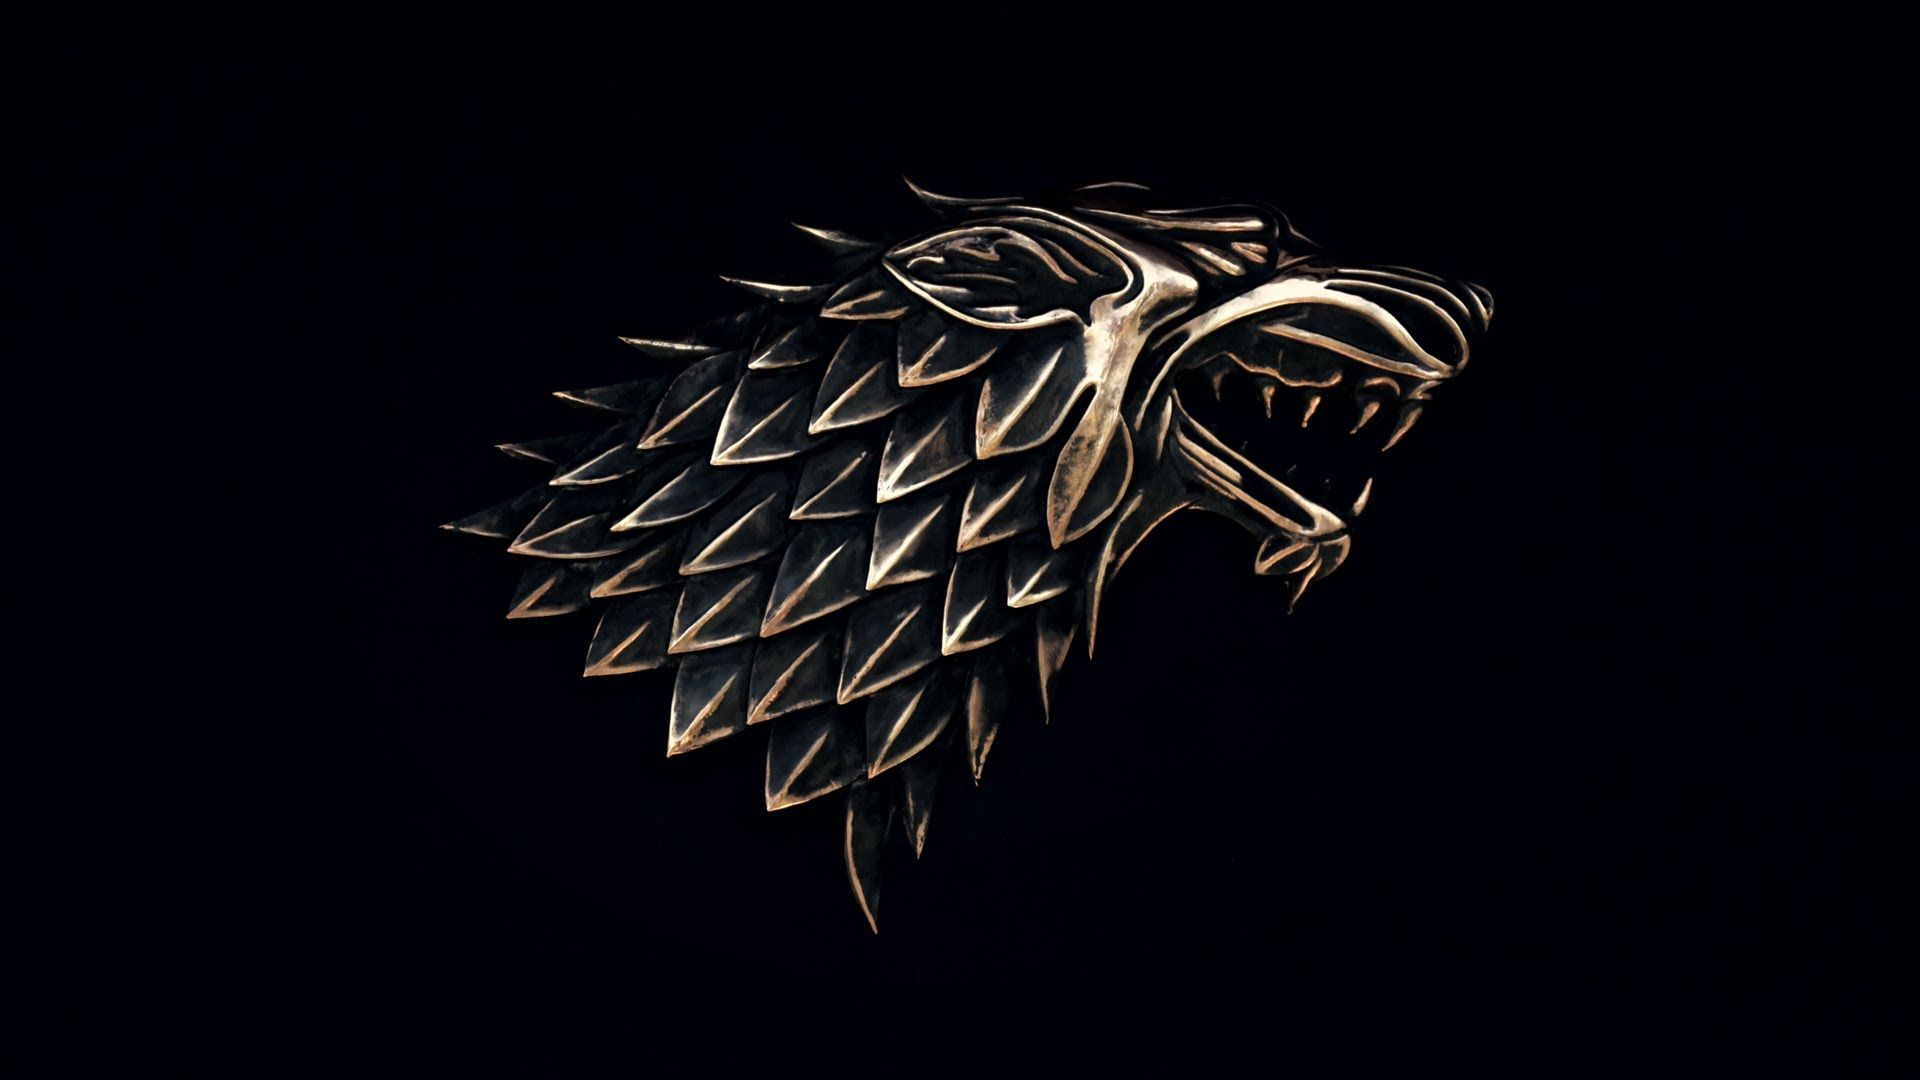 Making the Stark\'s Emblem from Game of Thrones.